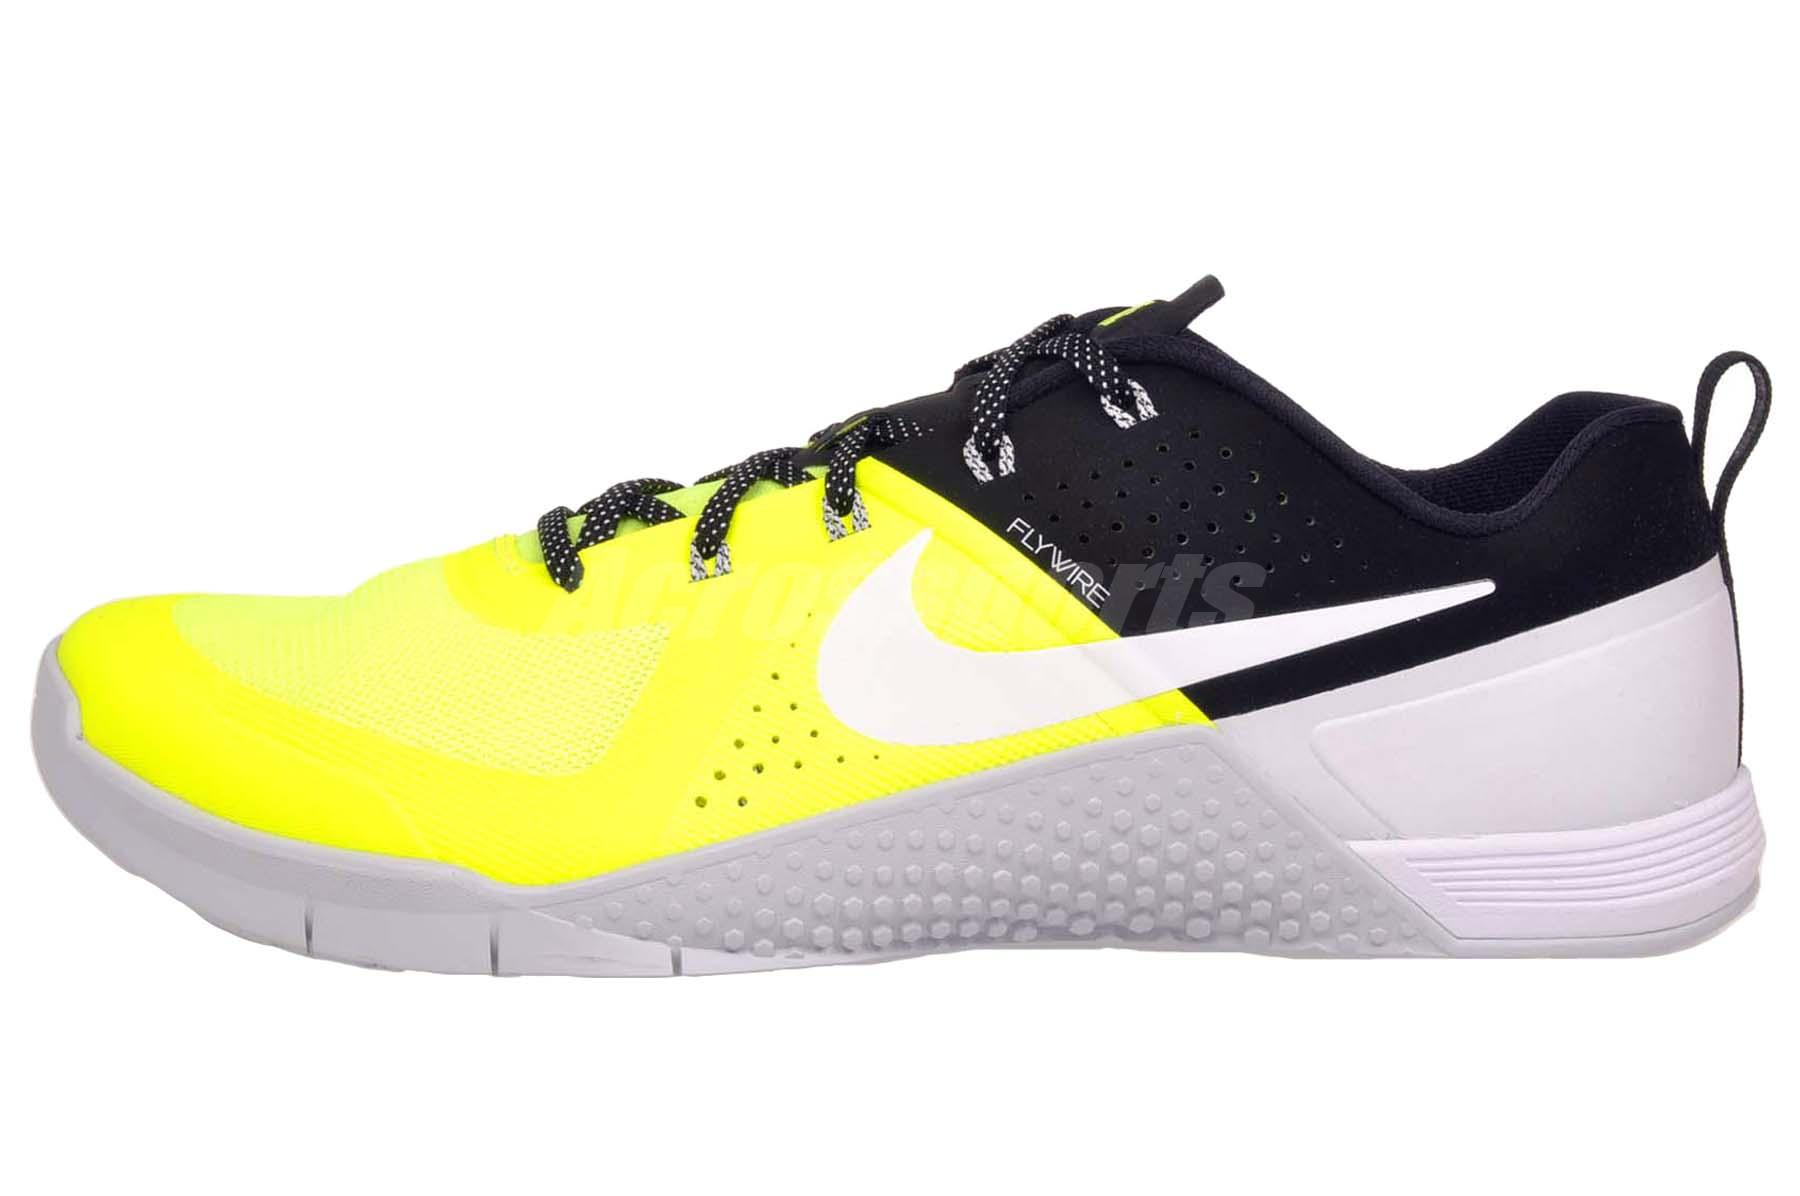 nike metcon 1 mens cross training shoes trainers volt. Black Bedroom Furniture Sets. Home Design Ideas